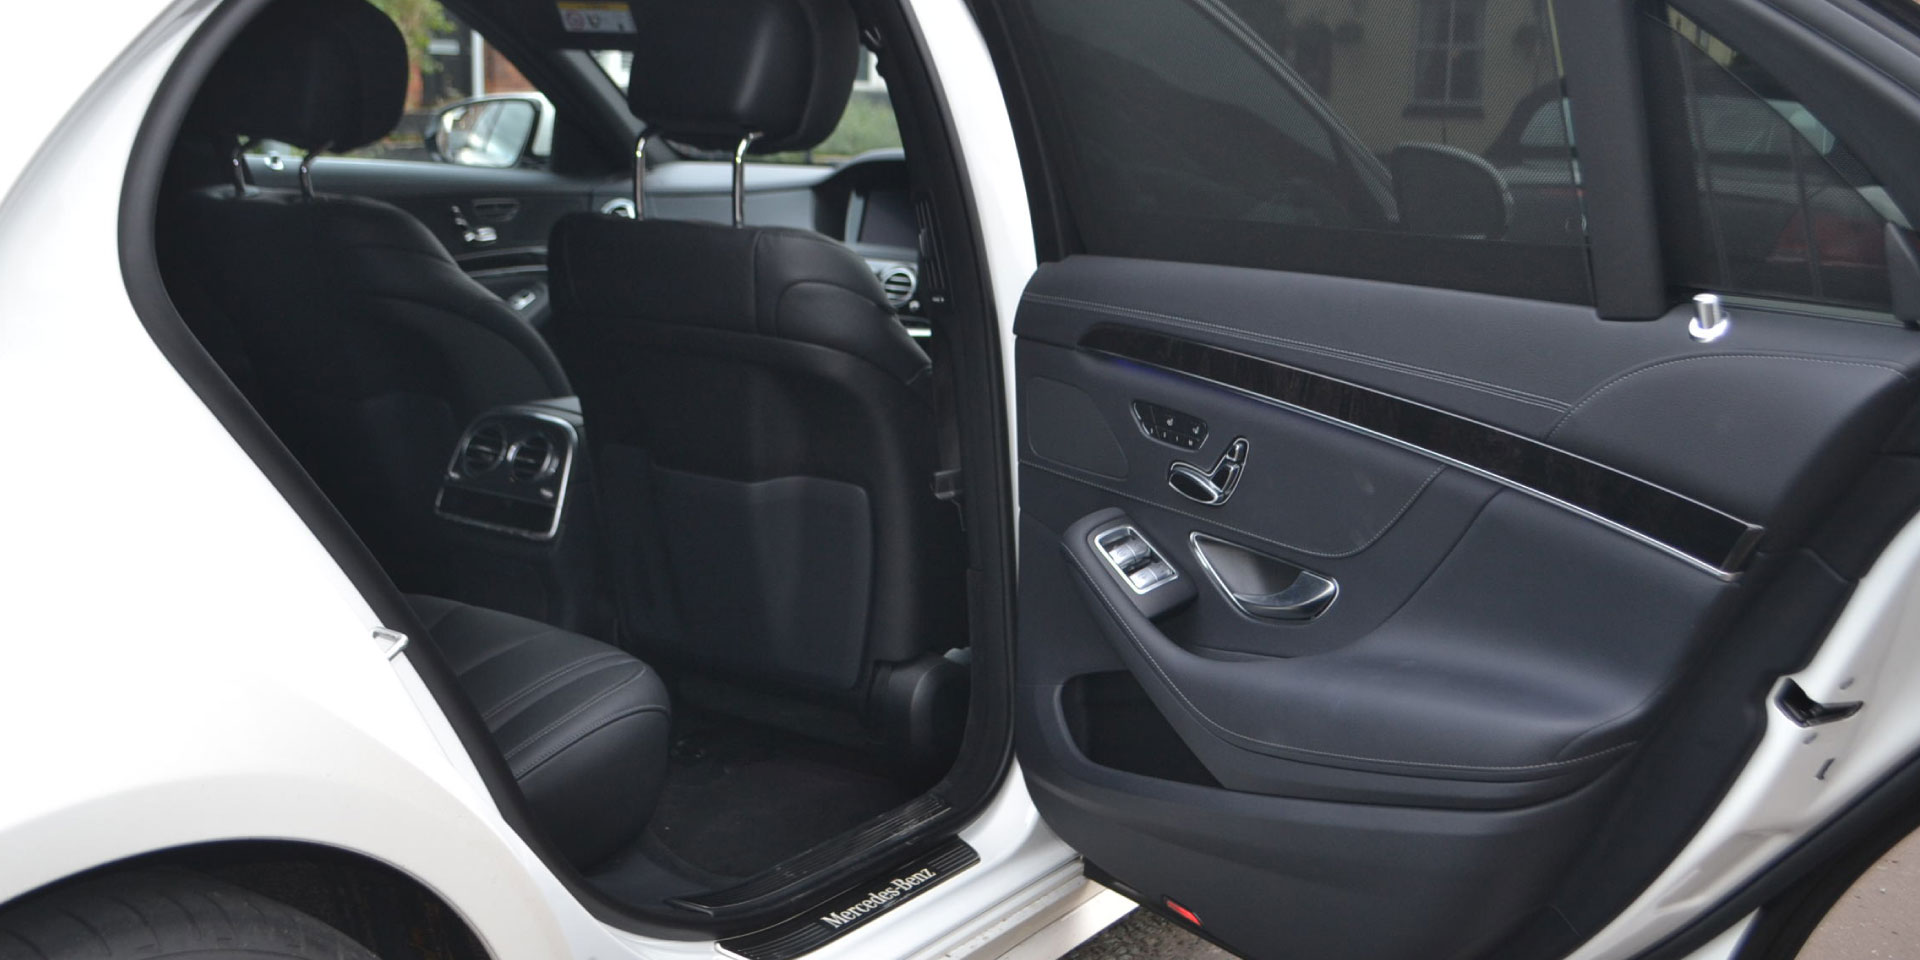 Professionally Cleaned Vehicles